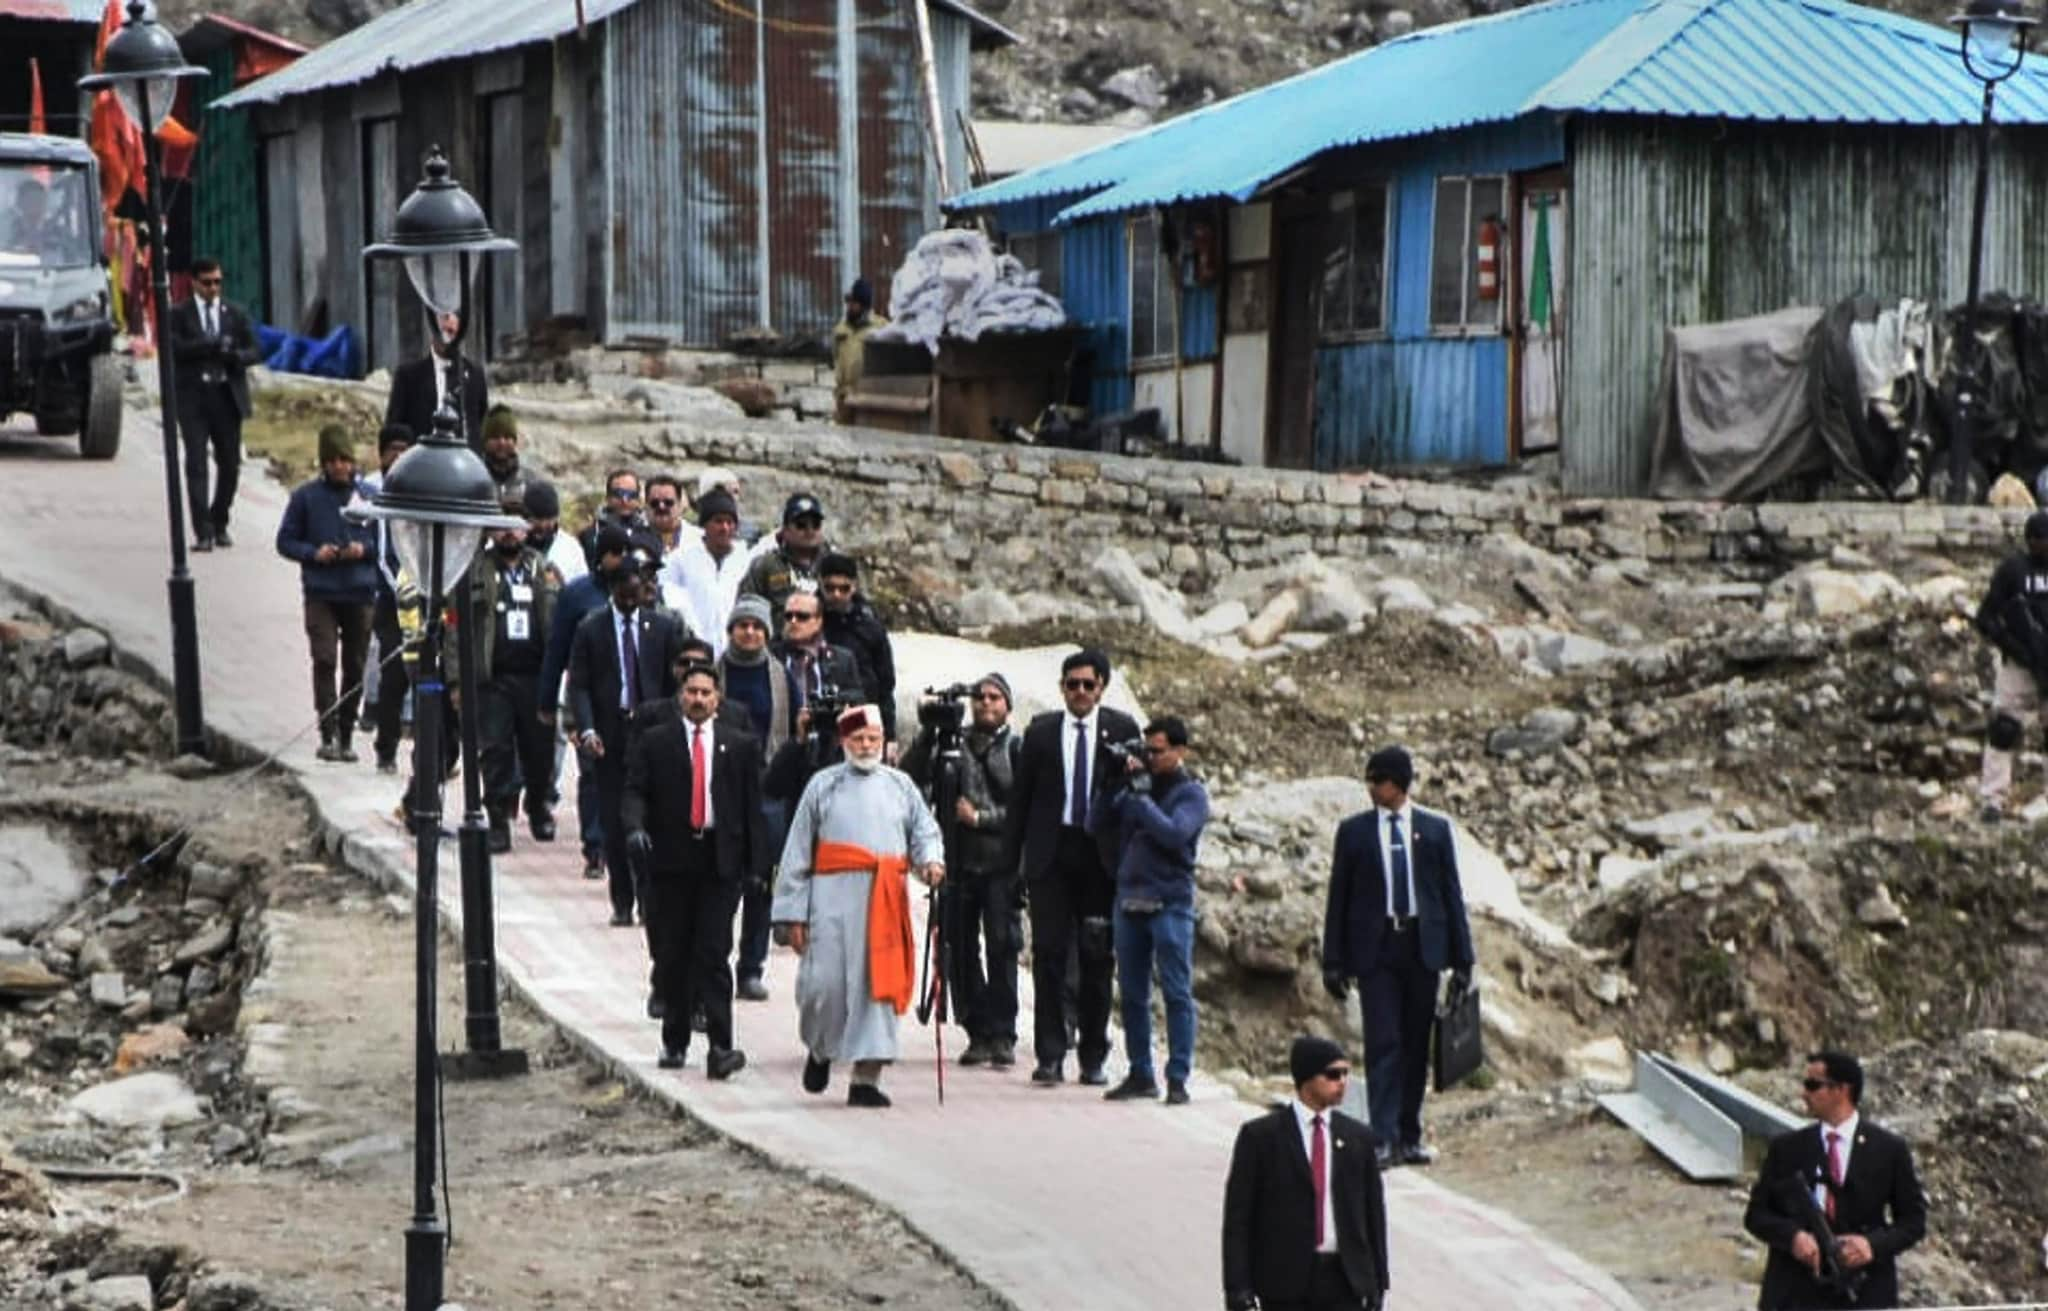 Kedarnath: Prime Minister Narendra Modi arrives at Kedarnath, for this two day pilgrimage to Himalayan shrines, in Rudraprayag district, Saturday, May 18, 2019. PM Modi will visit Badrinath on Sunday. (PTI Photo)(PTI5_18_2019_000062B)